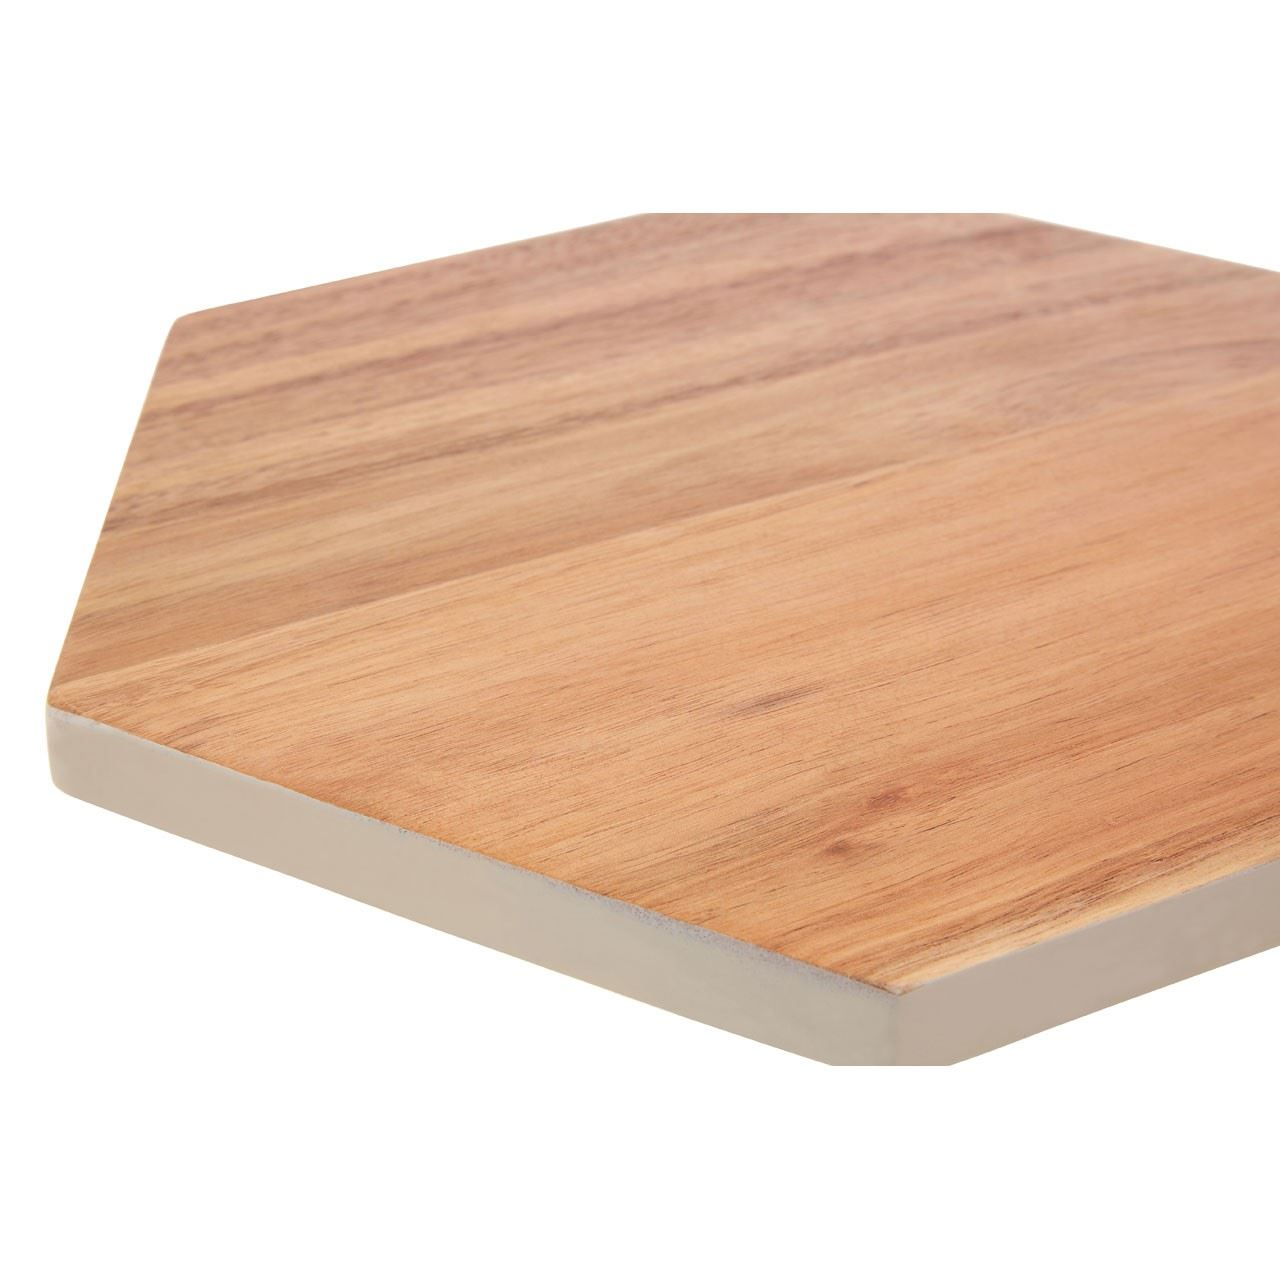 Chopping-Boards-Wooden-Cutting-Serving-Naturally-Antibacterial thumbnail 19